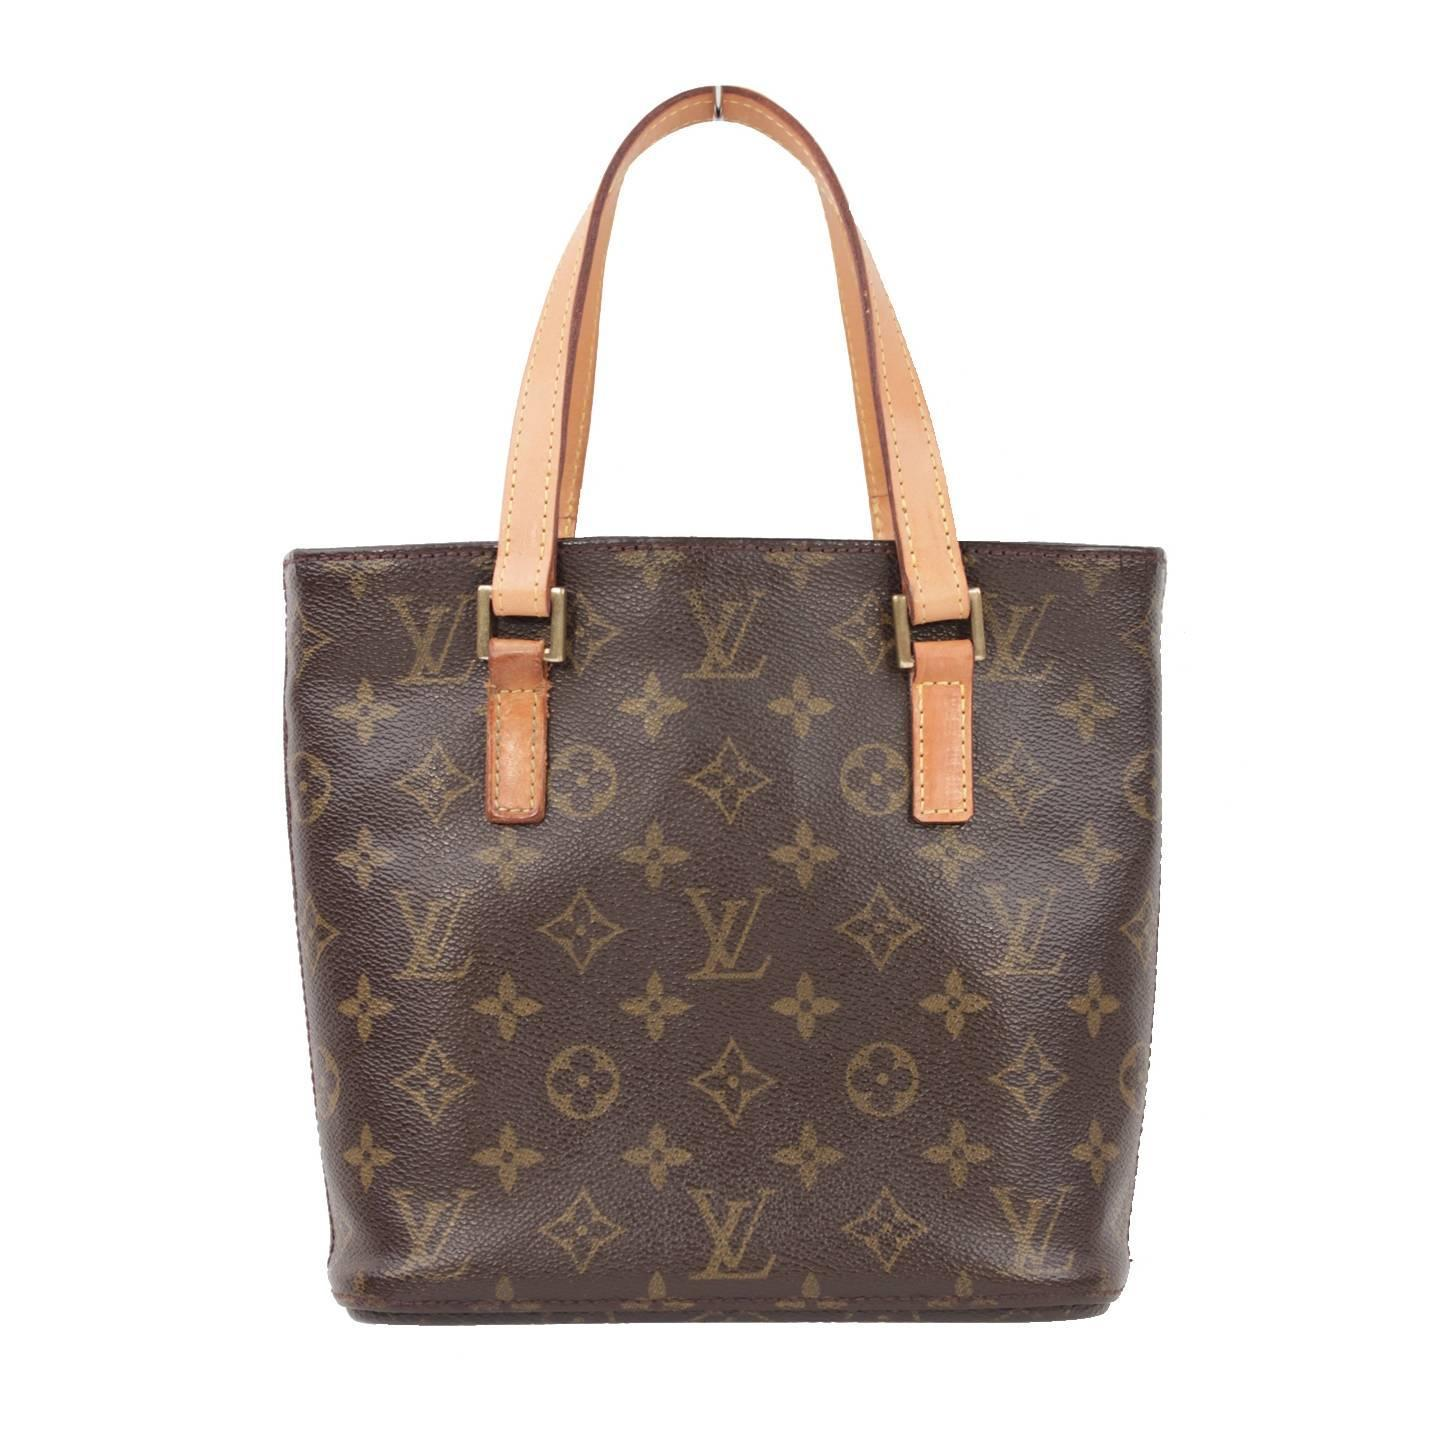 Shop Small Tote Handbags at eBags - experts in bags and accessories since We offer easy returns, expert advice, and millions of customer reviews.